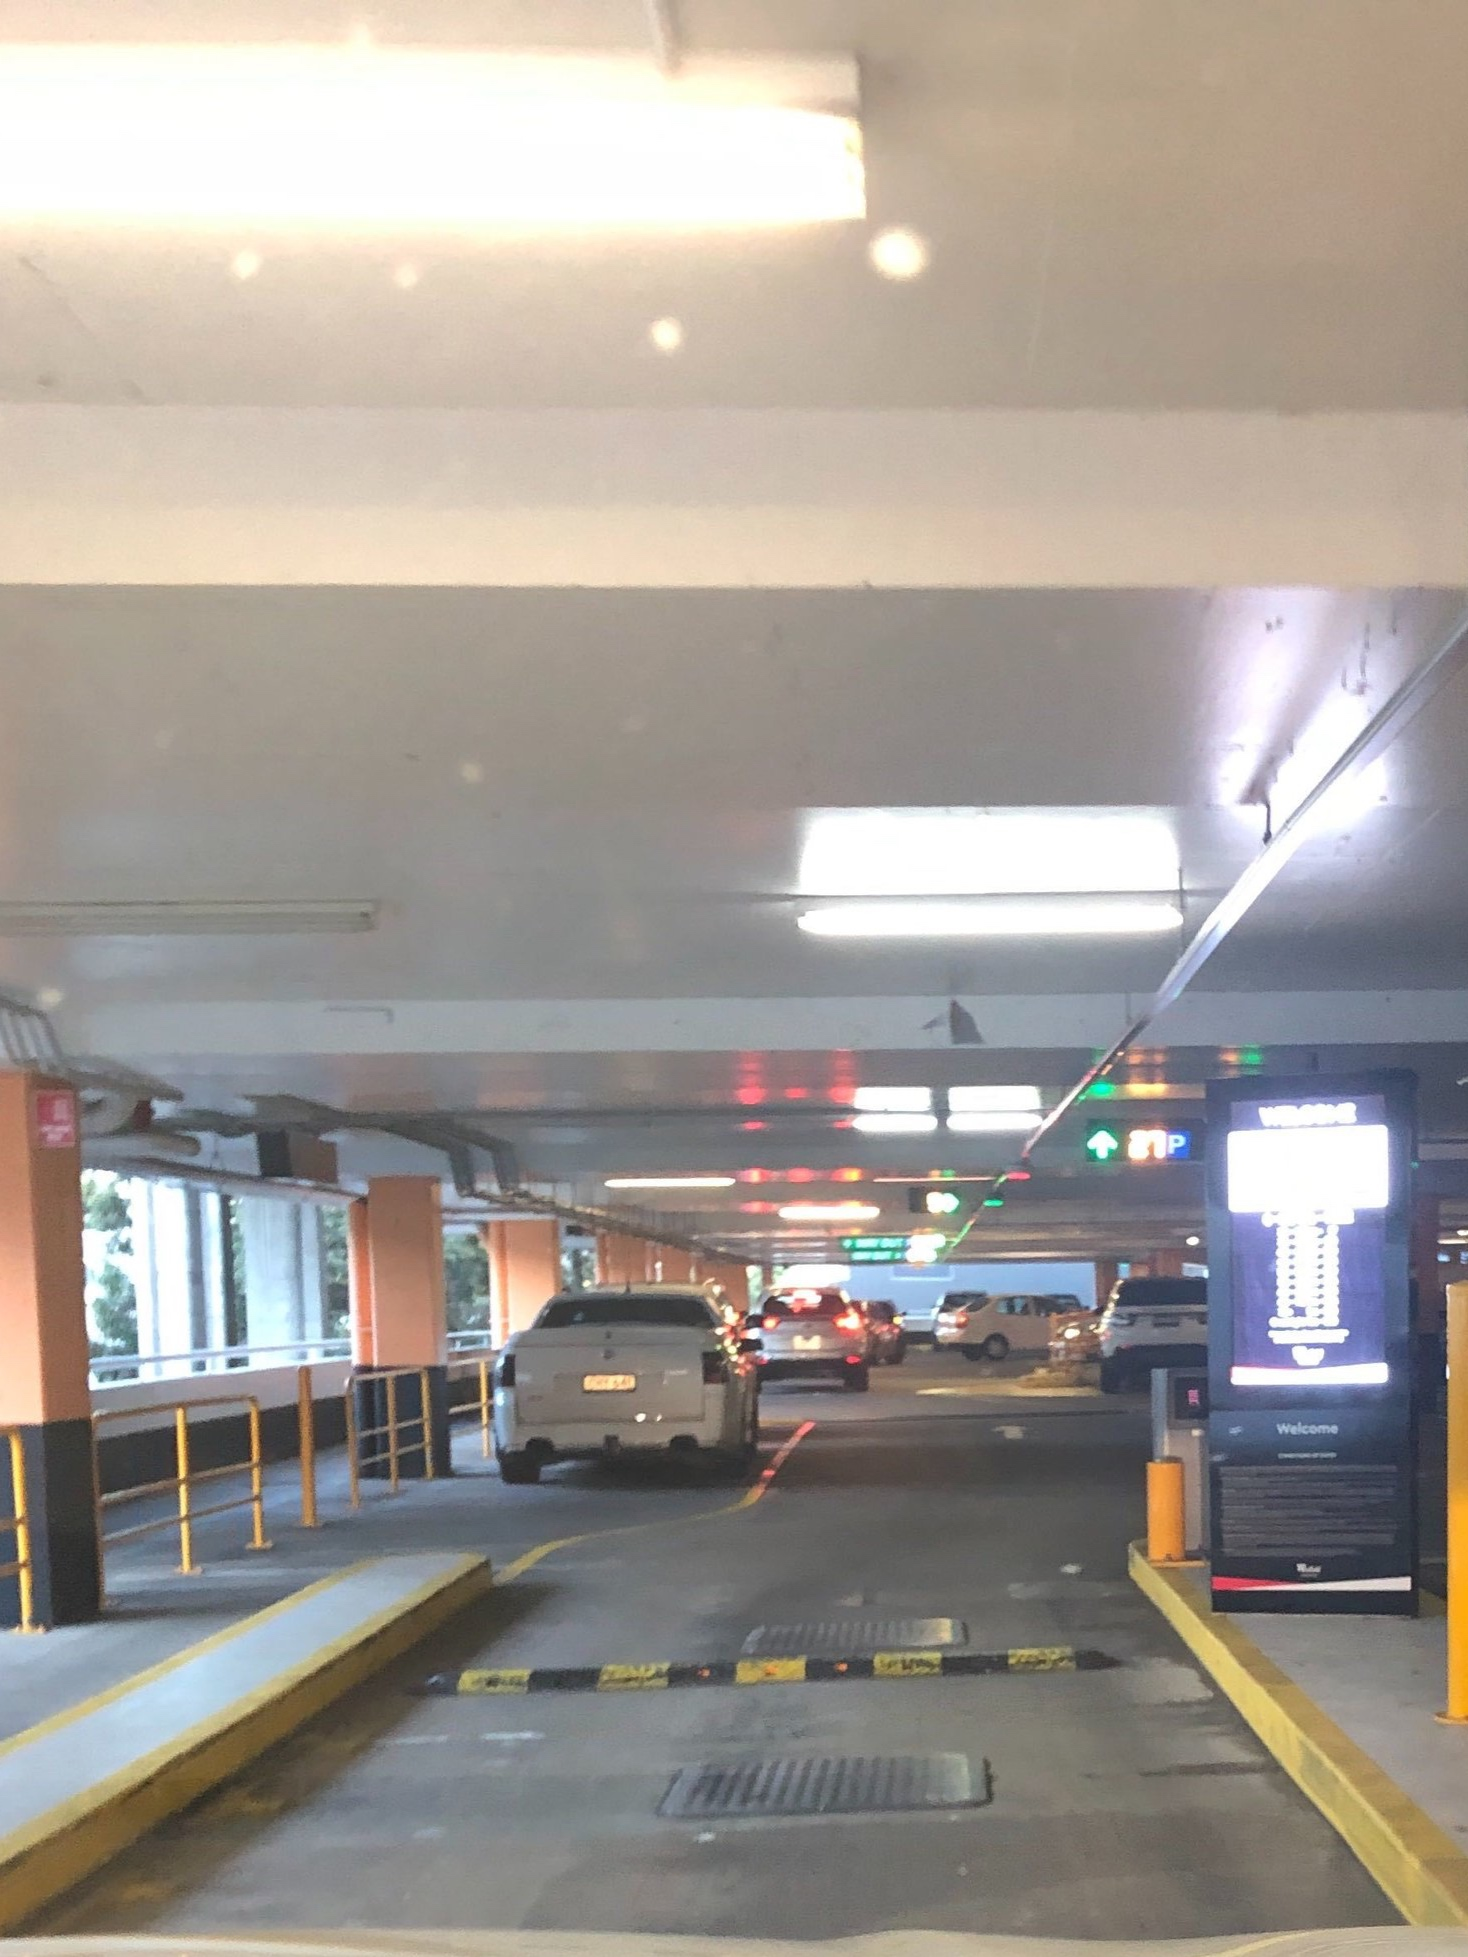 Enter the parking lot and on the right hand side there should be a ramp to upper level parking